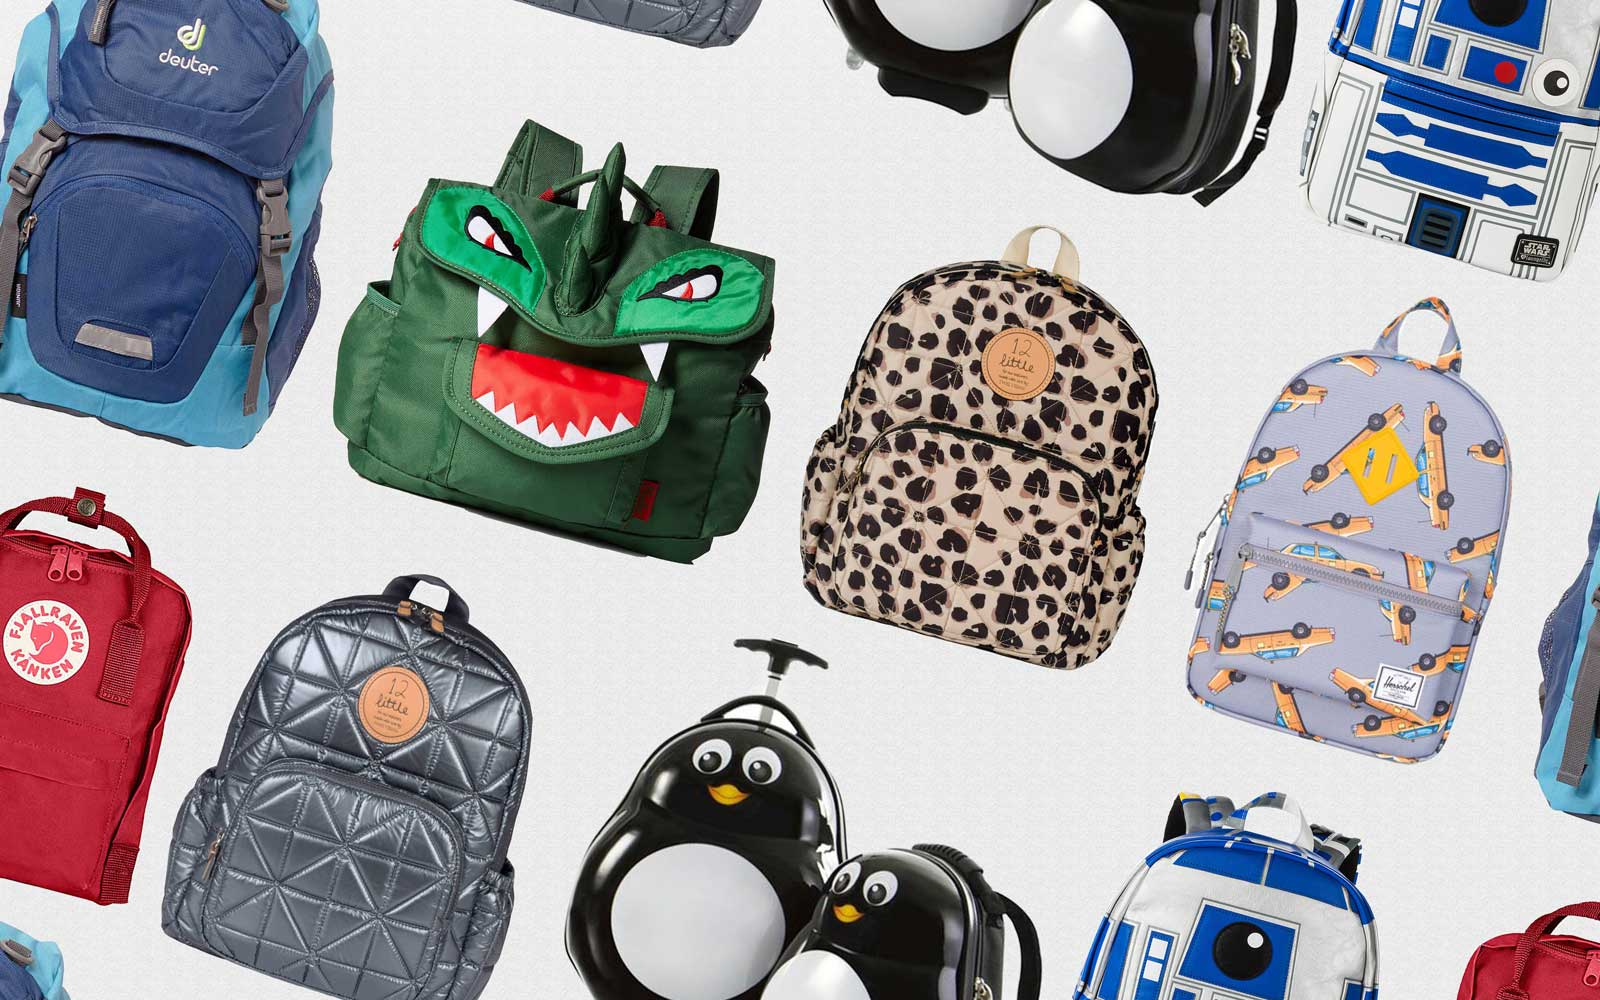 11 Cute Kids' Backpacks for Your Next Family Vacation